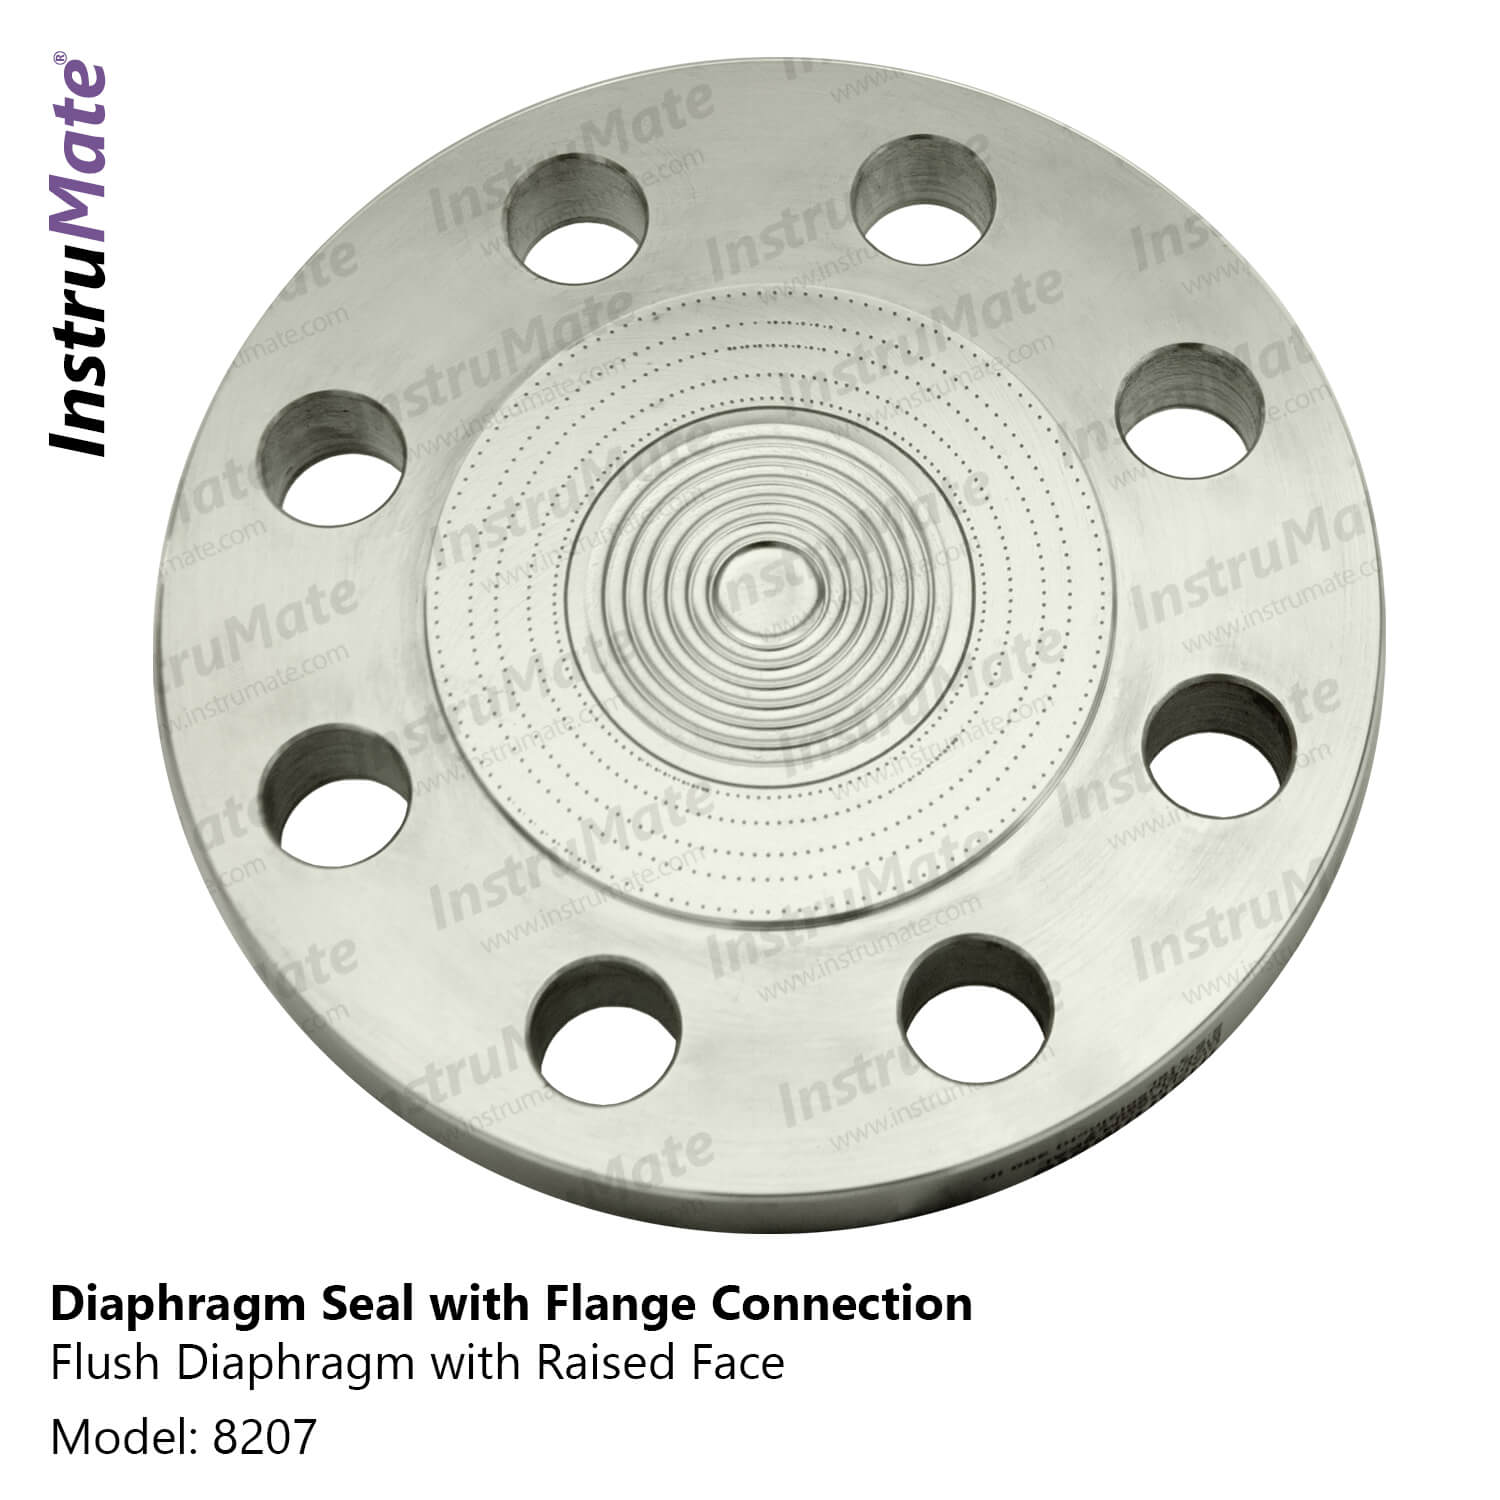 Diaphragm seal with flange connection- 8207 - Instrumate